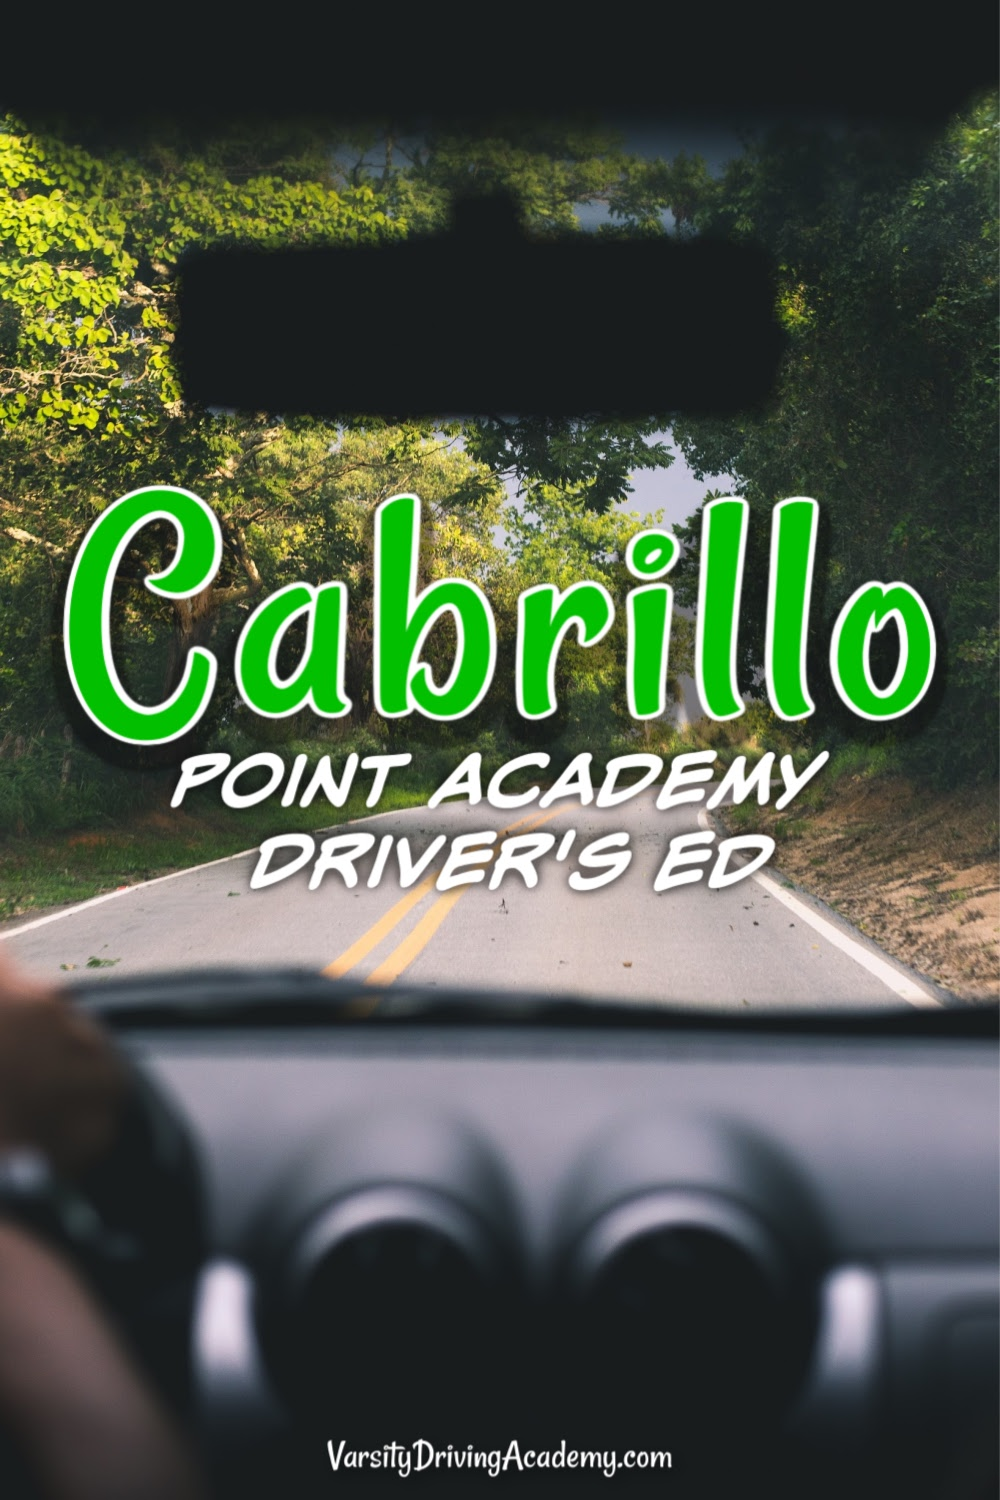 Varsity Driving Academy offers the best Cabrillo Point Academy driver's ed in Orange County teaching defensive driving and being the top-rated driving school.